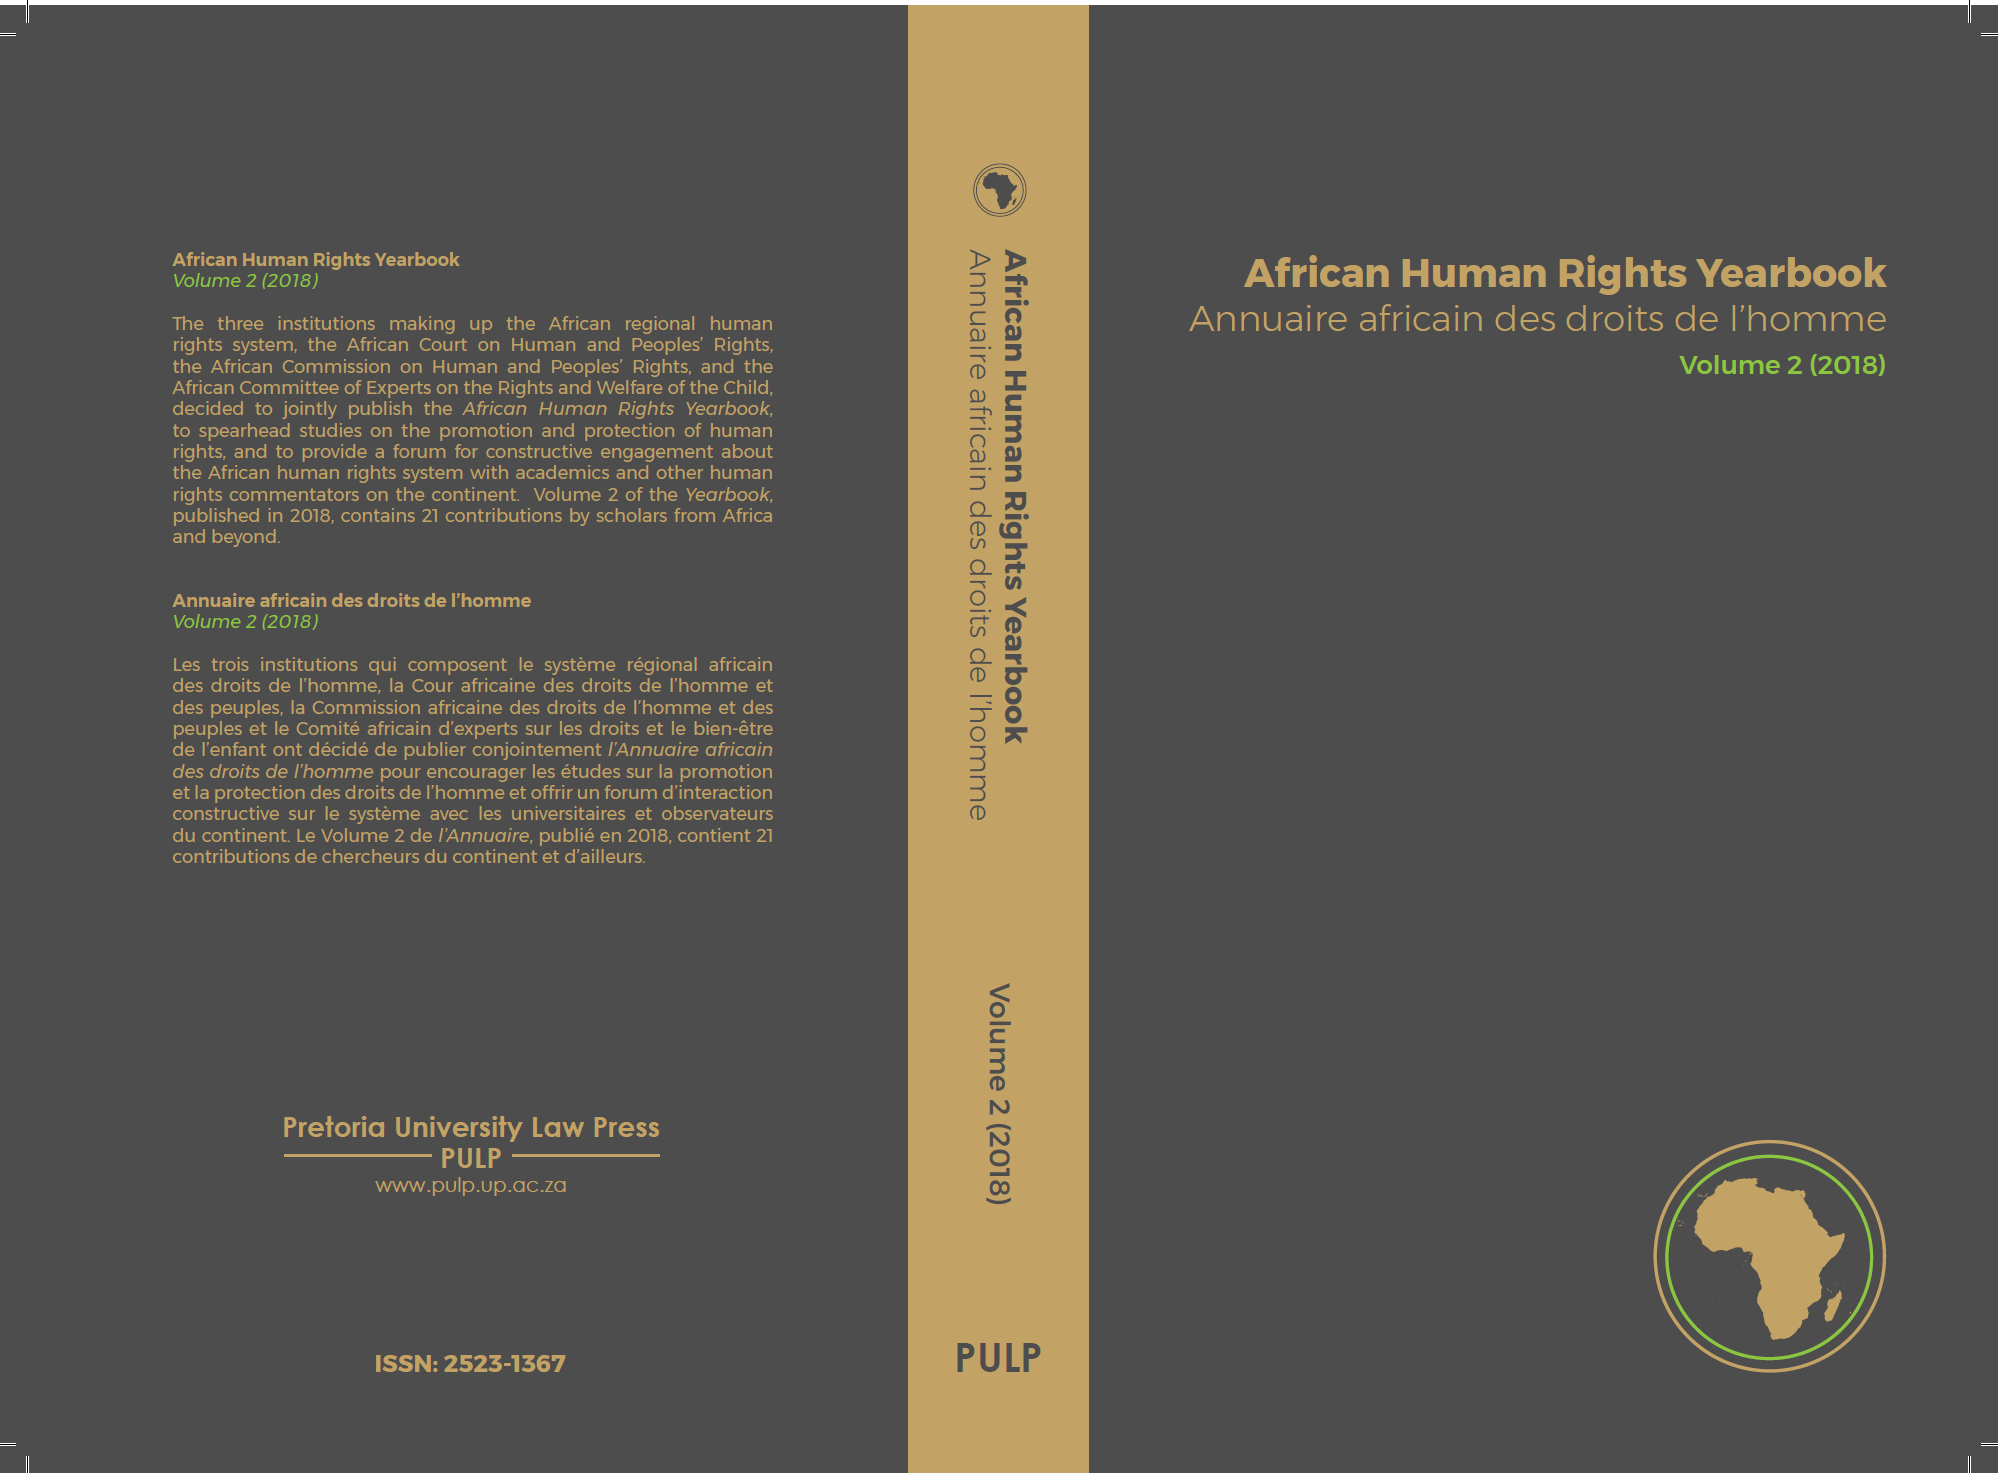 African Human Rights Yearbook 2018 Volume 2